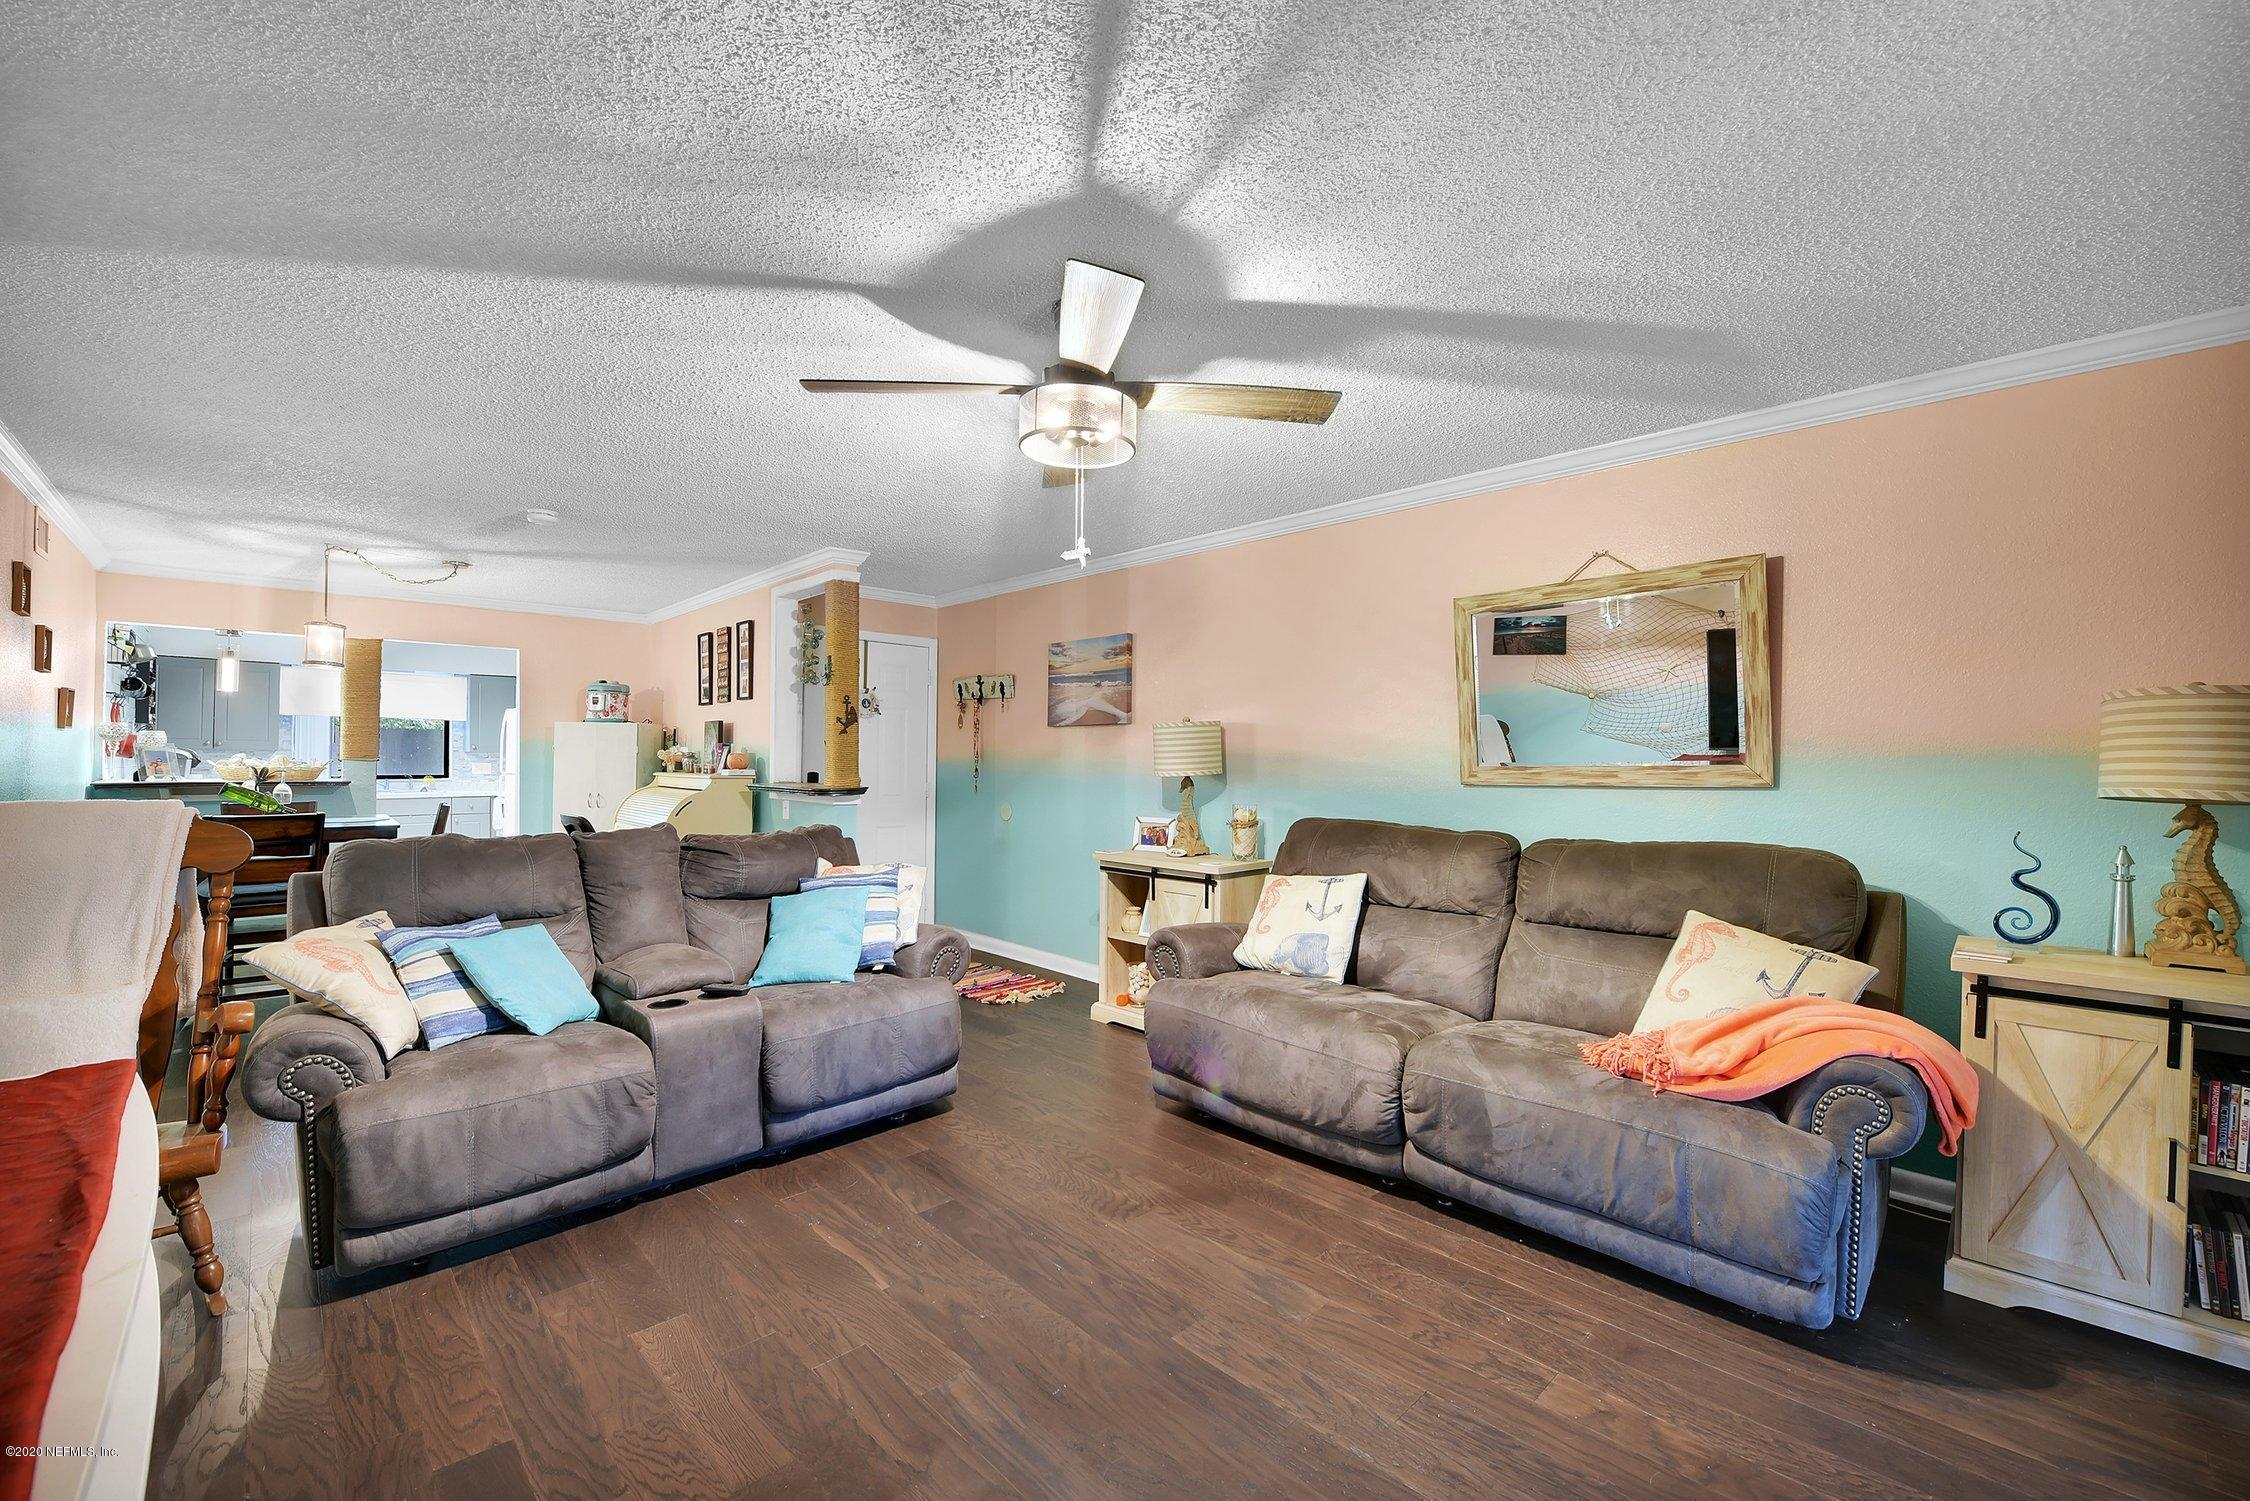 5811 ATLANTIC, JACKSONVILLE, FLORIDA 32207, 2 Bedrooms Bedrooms, ,2 BathroomsBathrooms,Residential,For sale,ATLANTIC,1081137